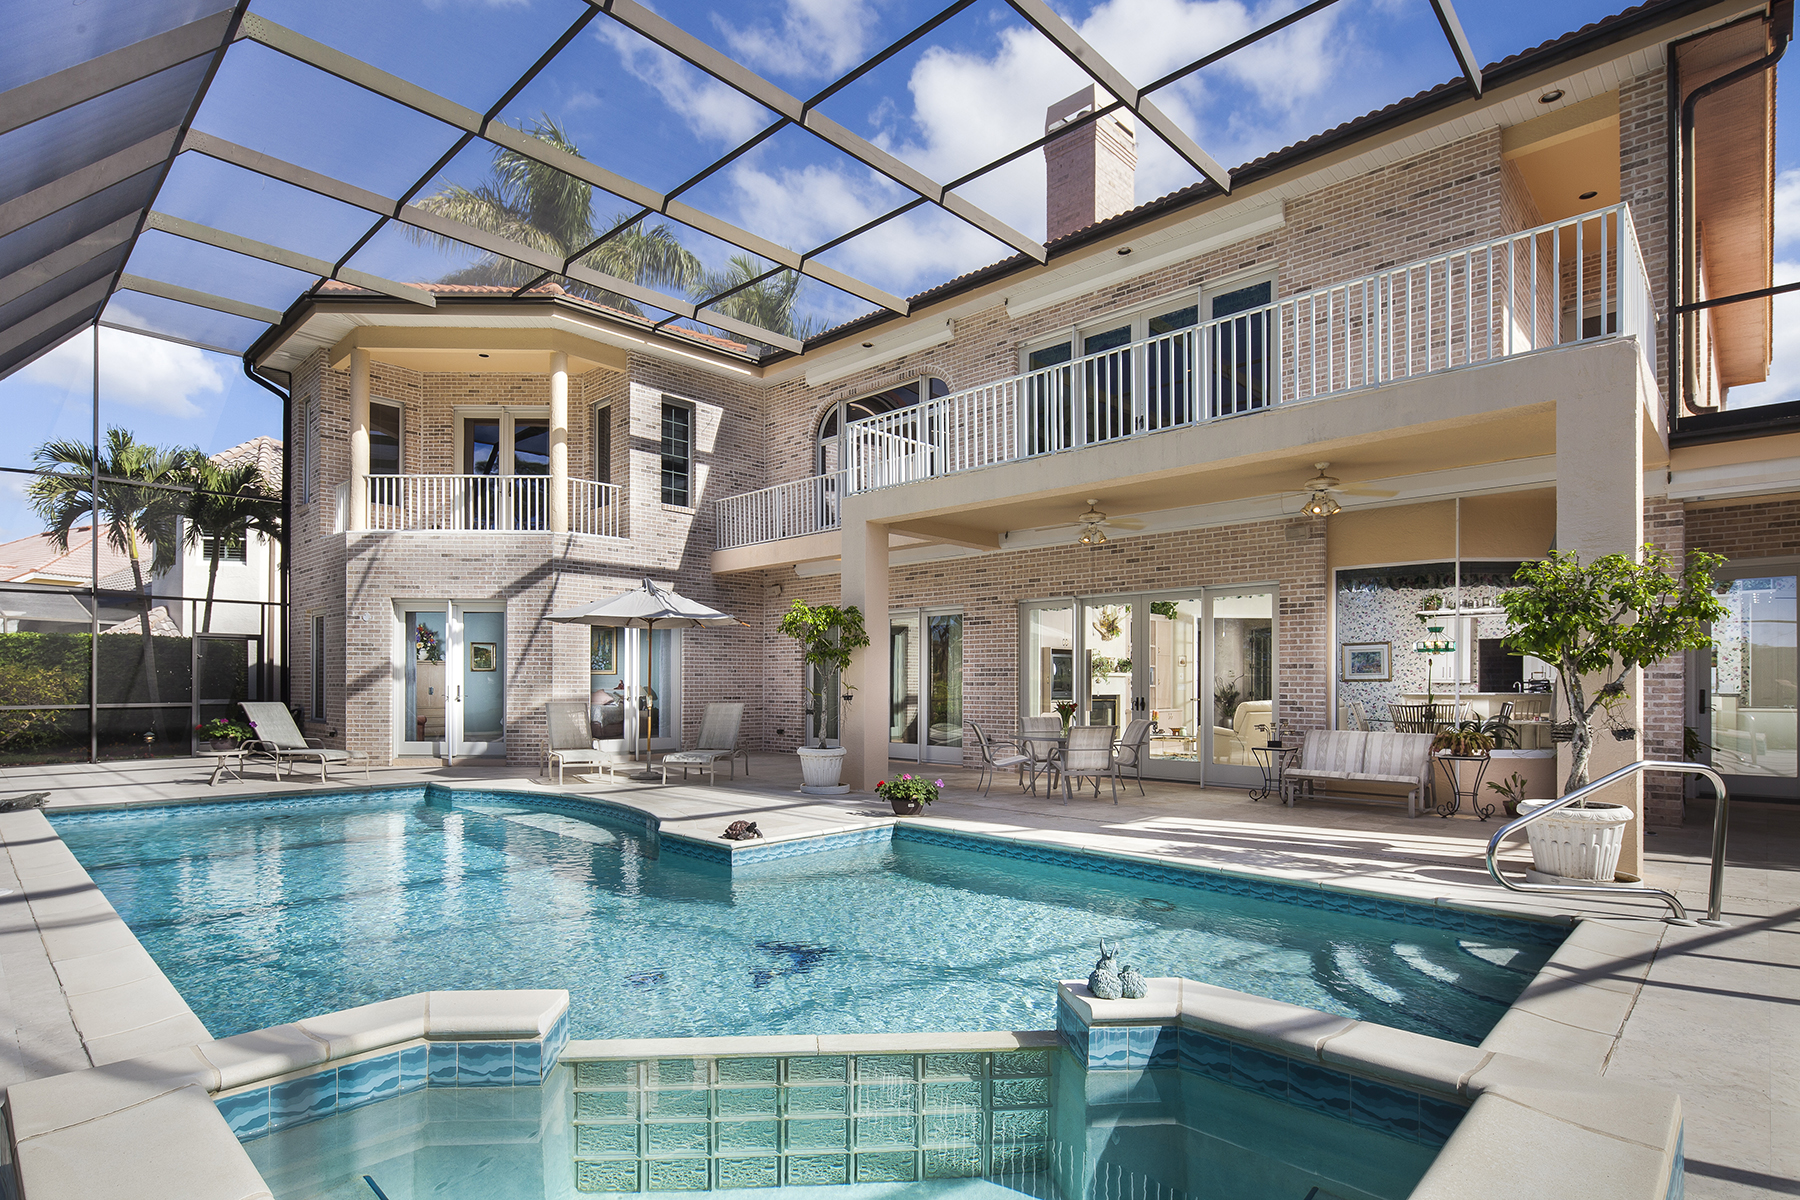 Single Family Home for Sale at PELICAN BAY - BARRINTON 6955 Green Tree Dr Naples, Florida, 34108 United States